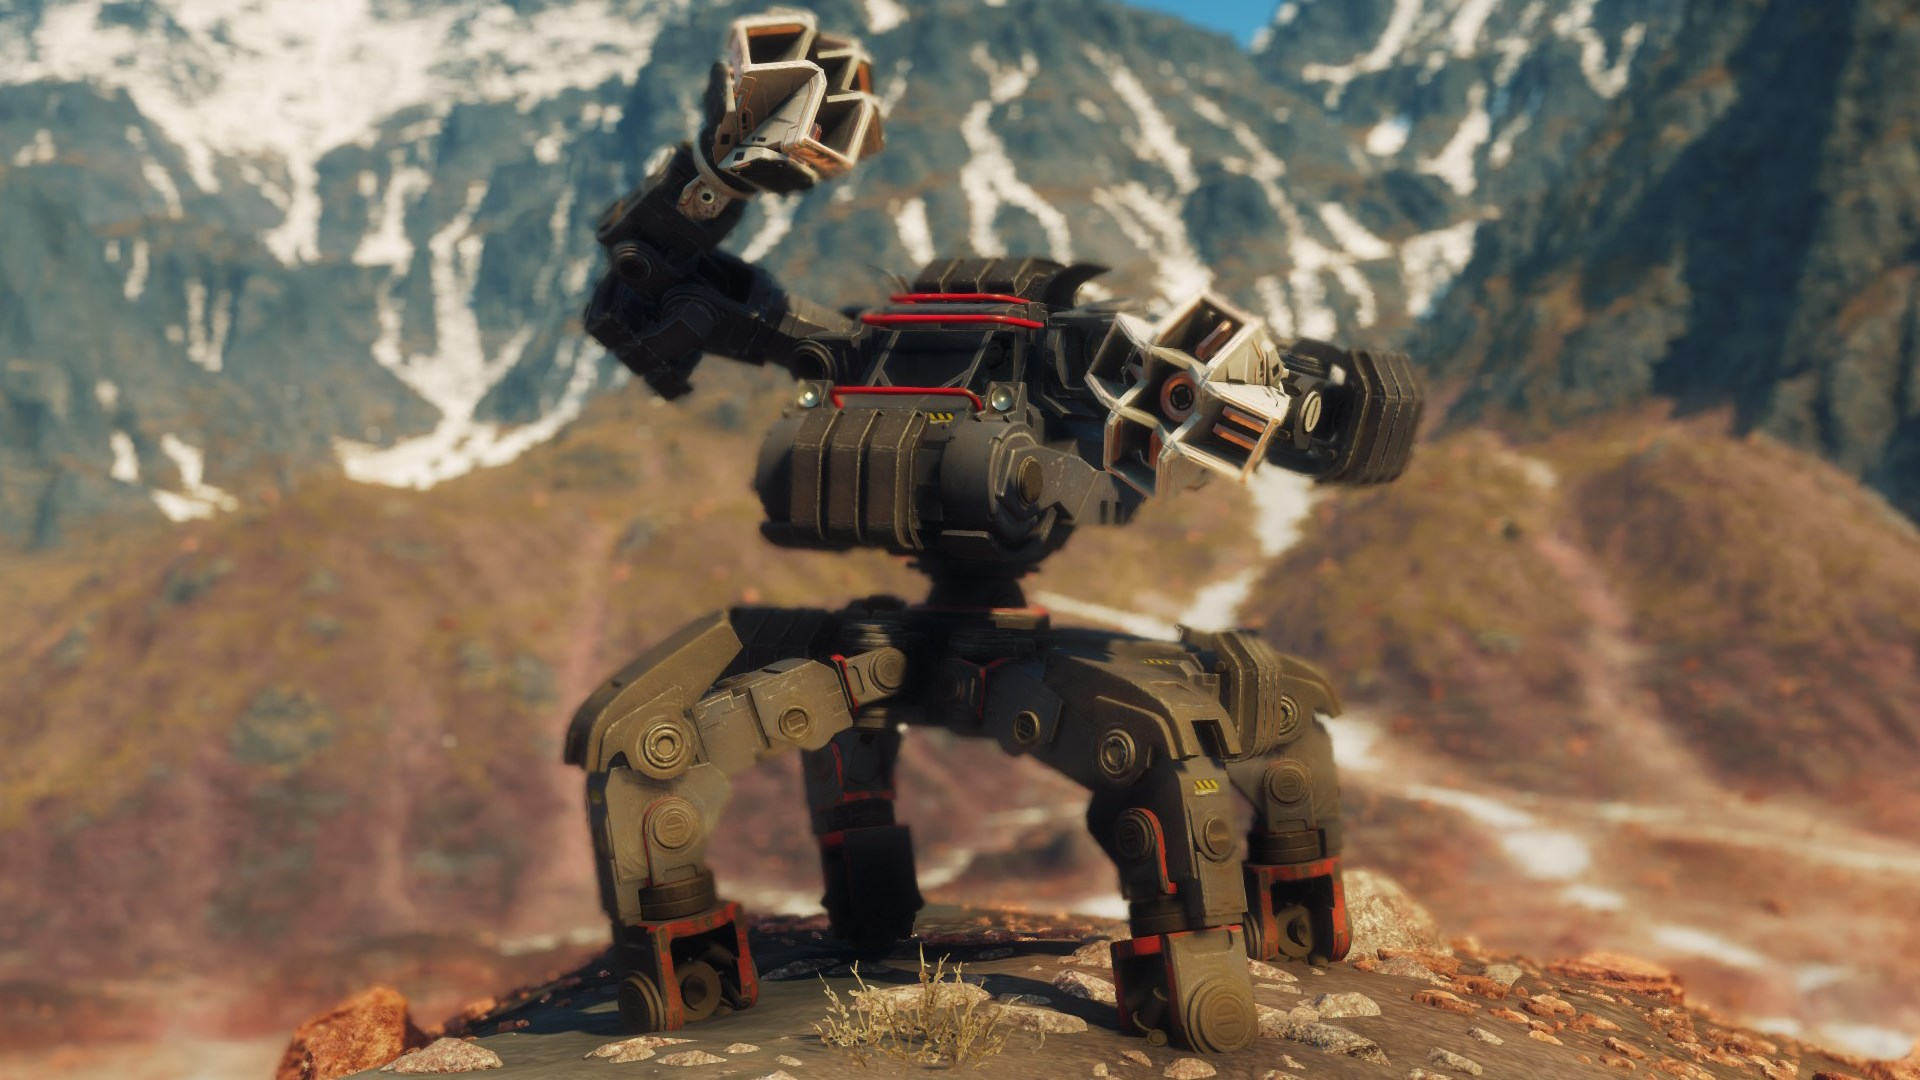 Just Cause 4 - Brawler Mech